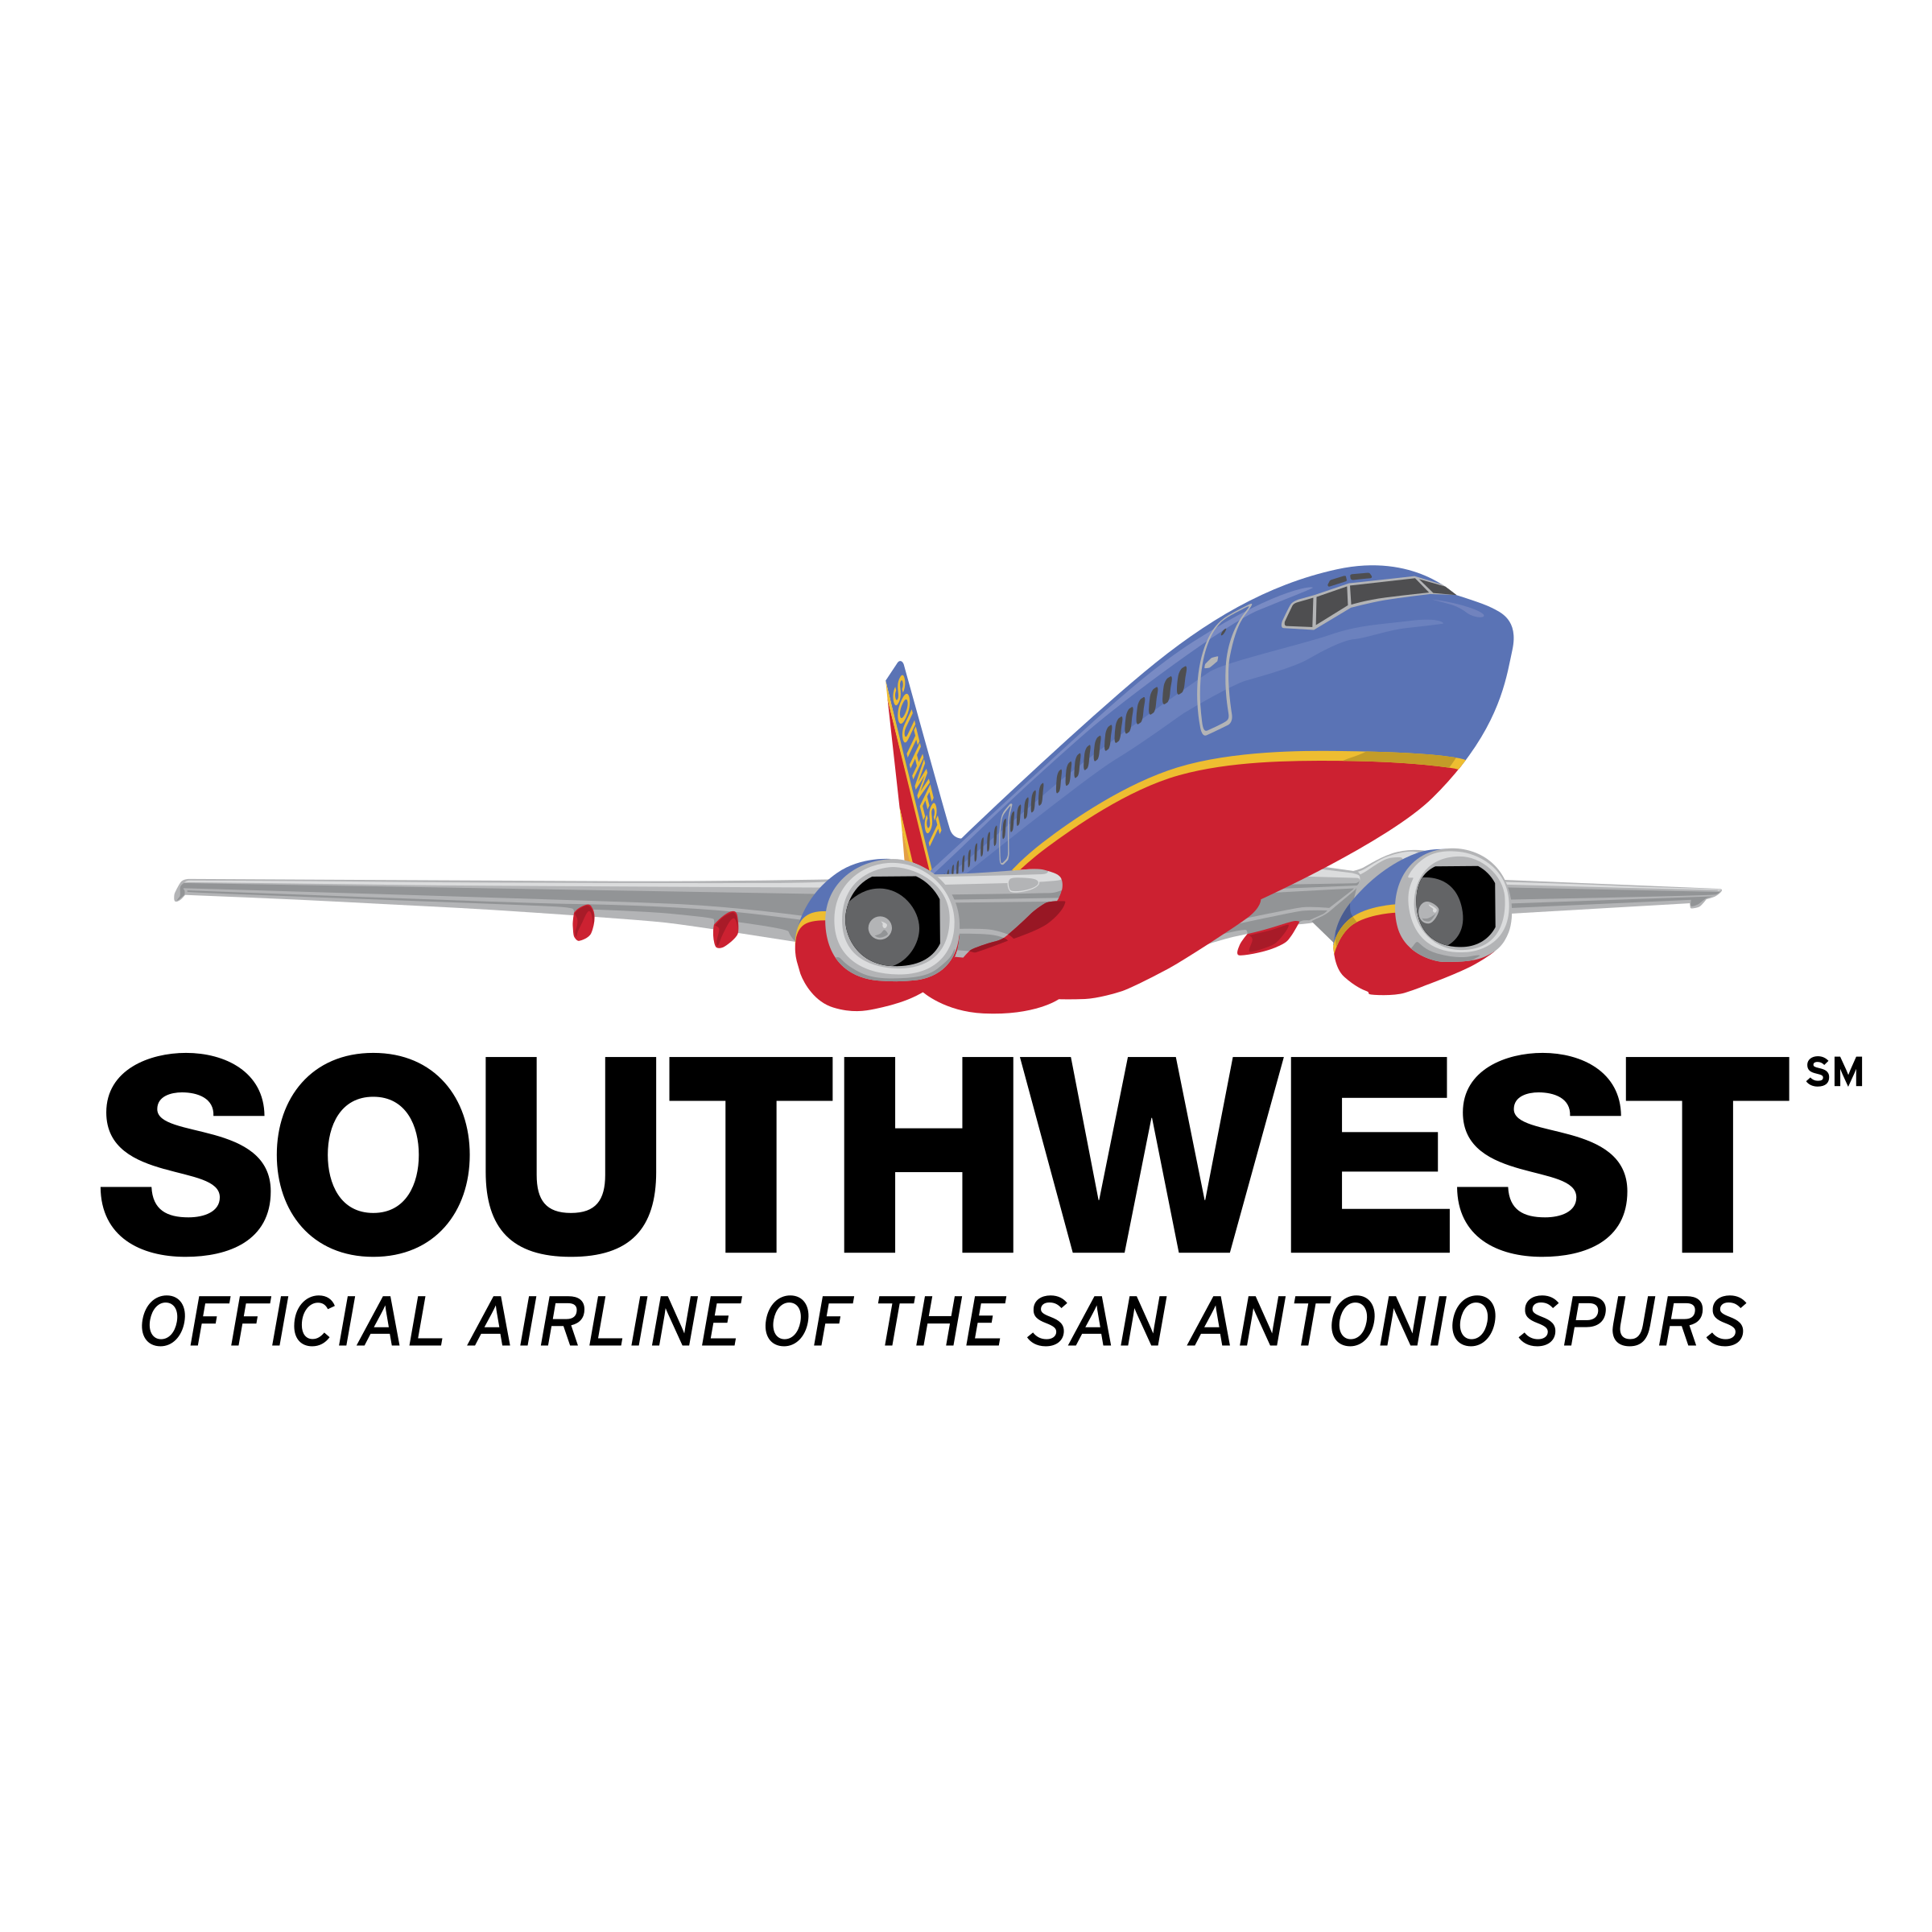 southwest airlines logo png transparent - Southwest Airlines Ppt Template Free Download